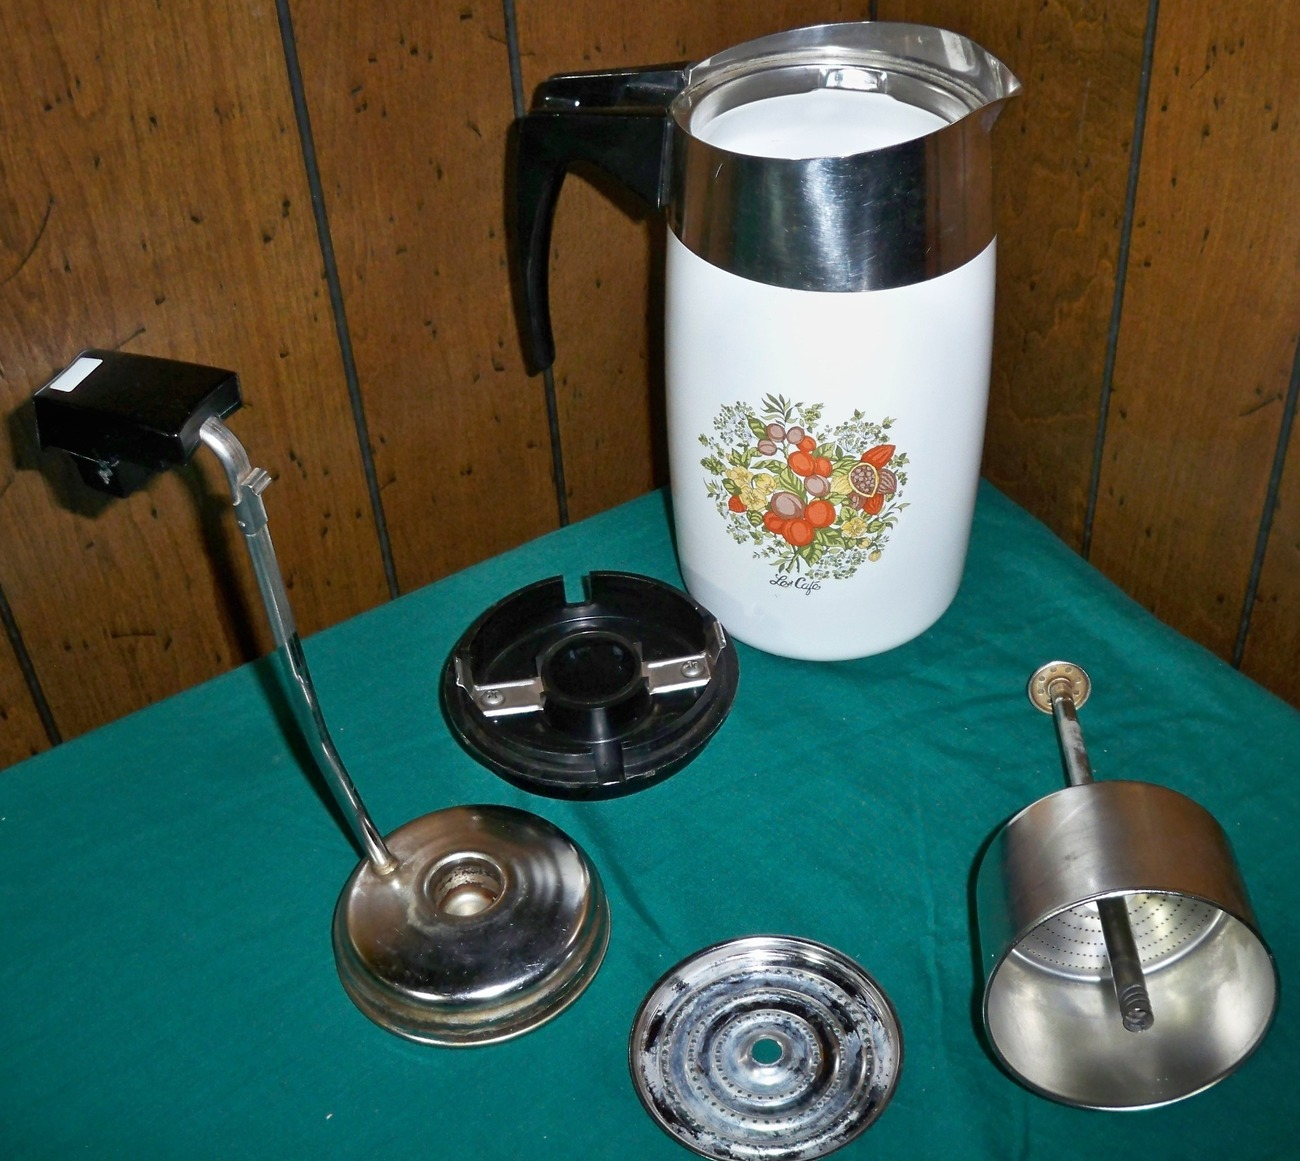 Rare Vintage Corning Ware 10 Cup Electric Percolator Spice of Life  E–1210 - 8